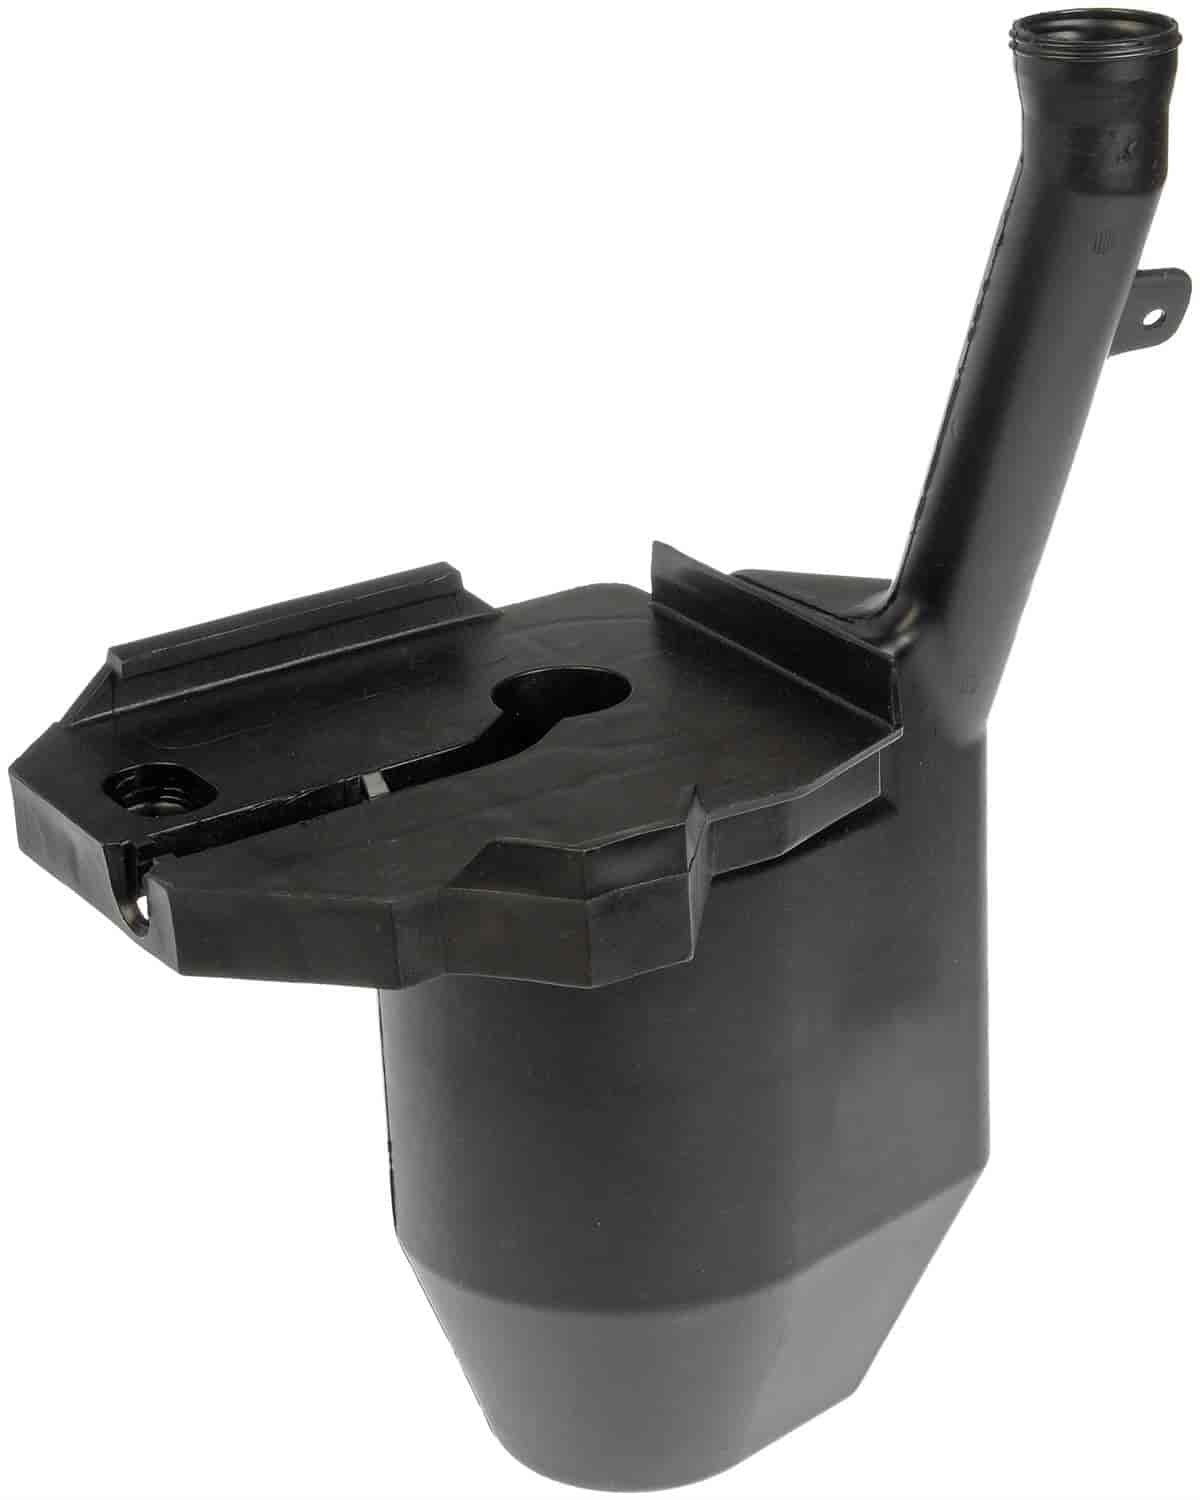 Dorman Products 603-116 - Dorman Fluid Reservoirs/Caps